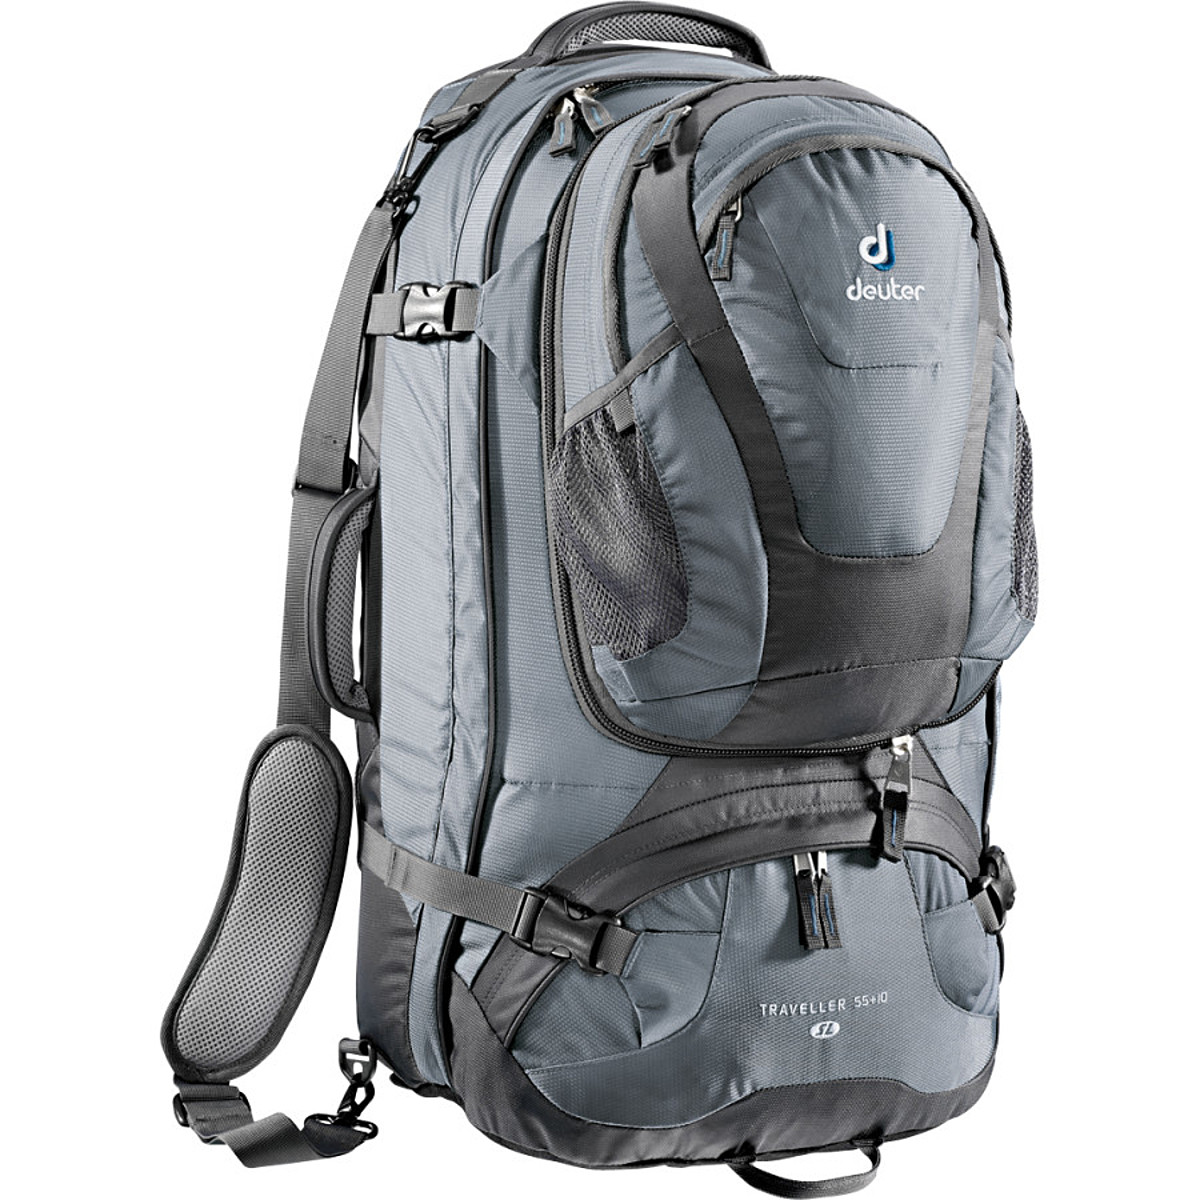 Deuter Traveller 55+10 SL